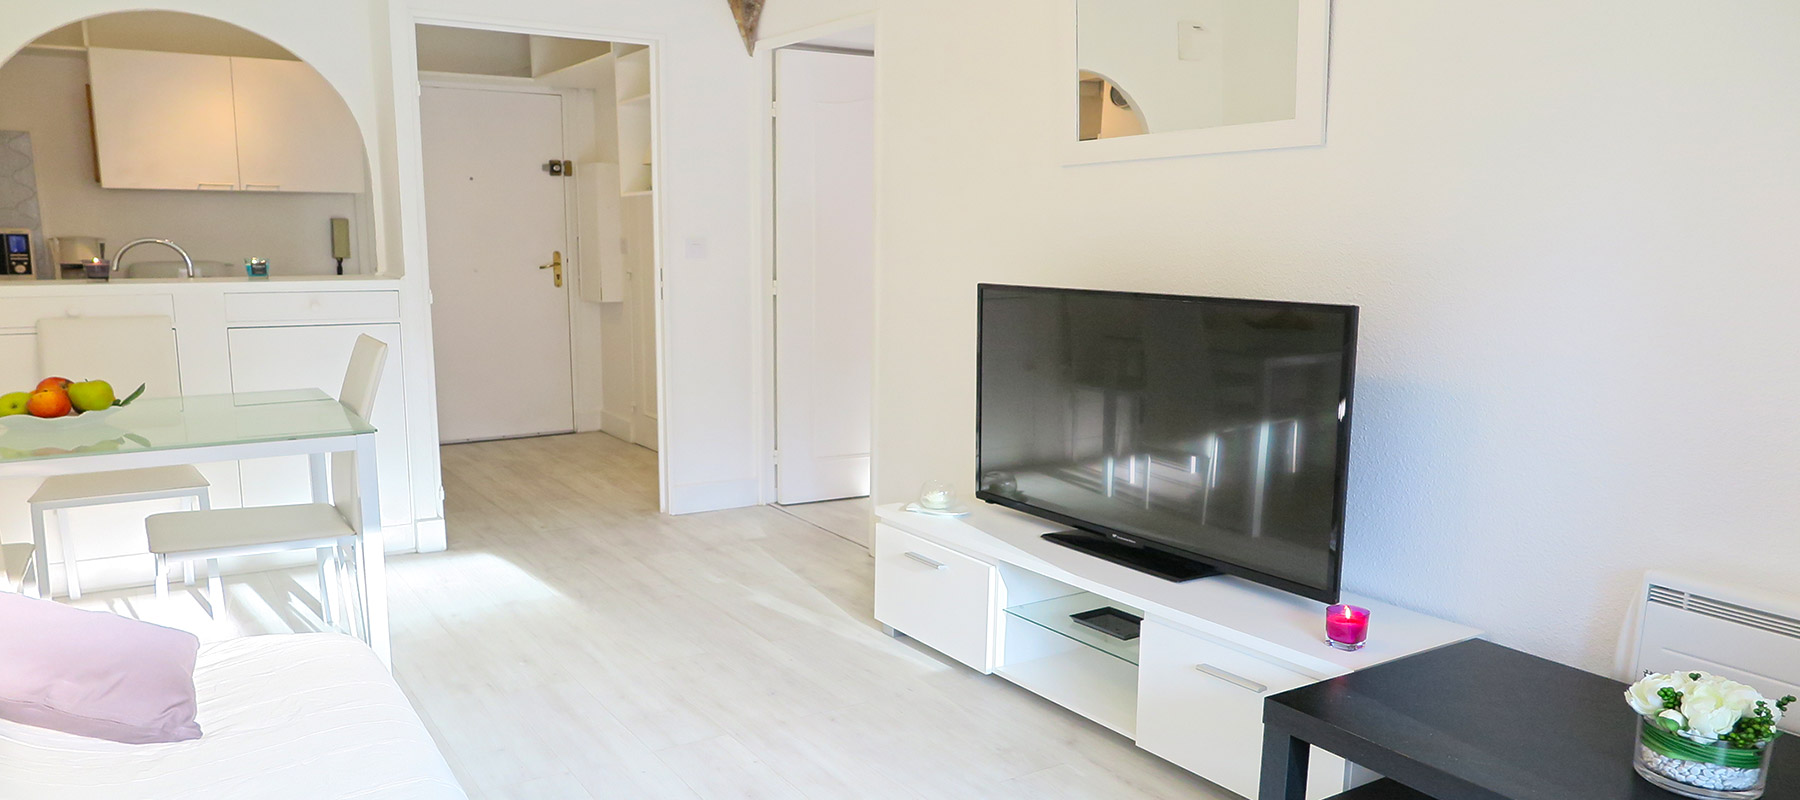 location-appartement-maison-cannes-antibes-vallauris-06-20